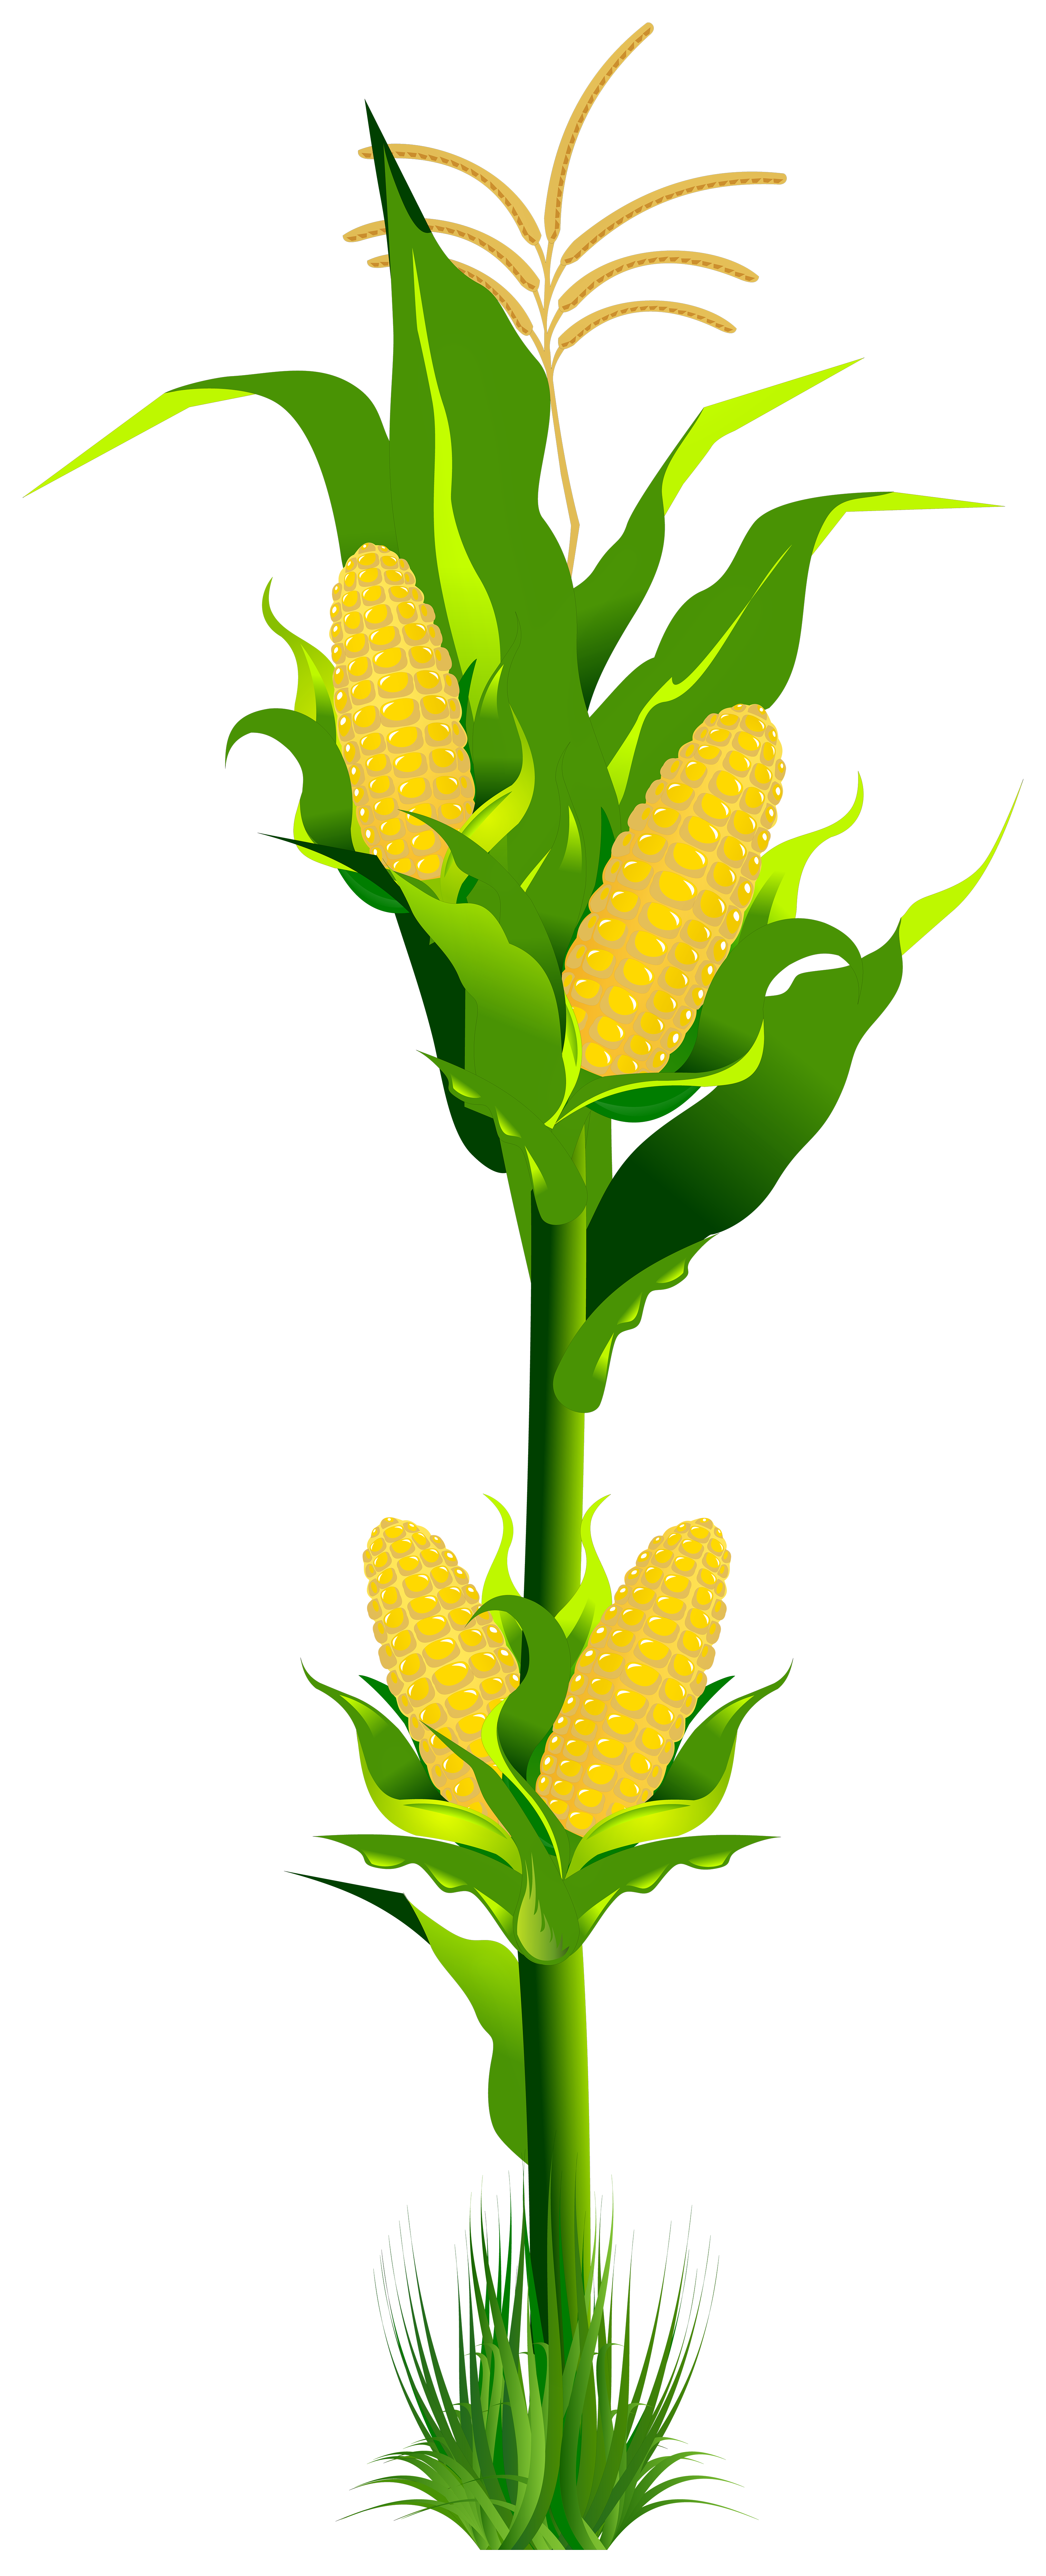 Corn Plant Png Clipart Gallery Yopriceville High Quality Images And Transparent Png Free Clipart Corn Plant Clip Art Plants